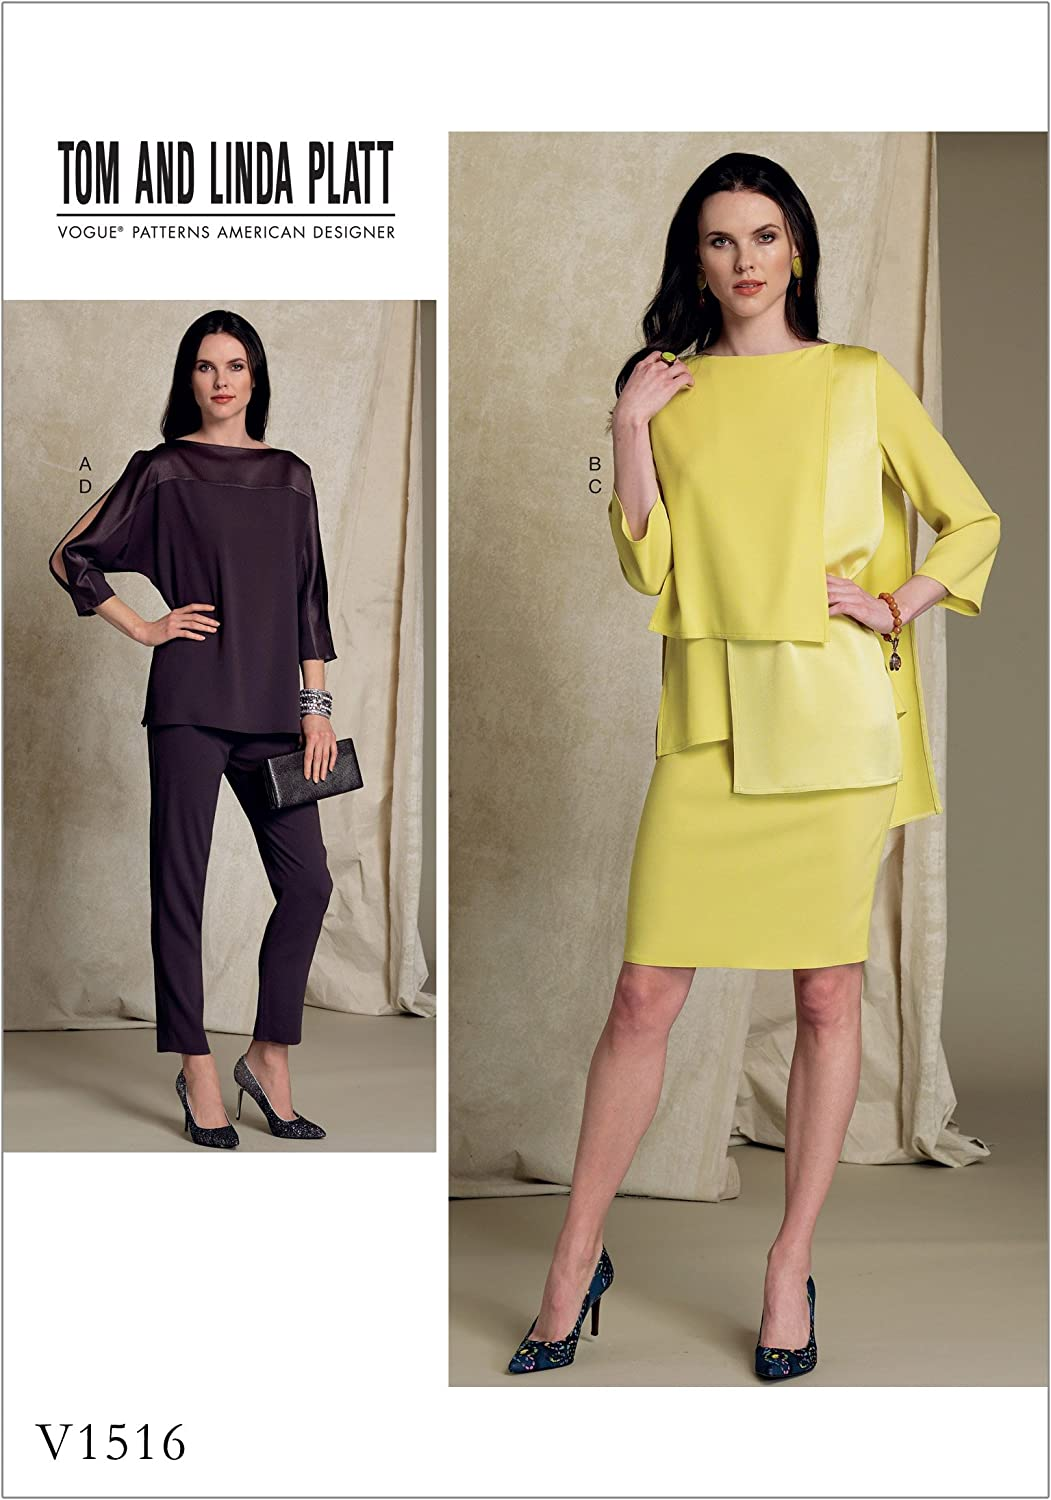 Vogue Patterns Misses' Batwing Or Layered Overlay Tops, Pencil Skirt And  Pants, 12 12 12 12 12, Orange